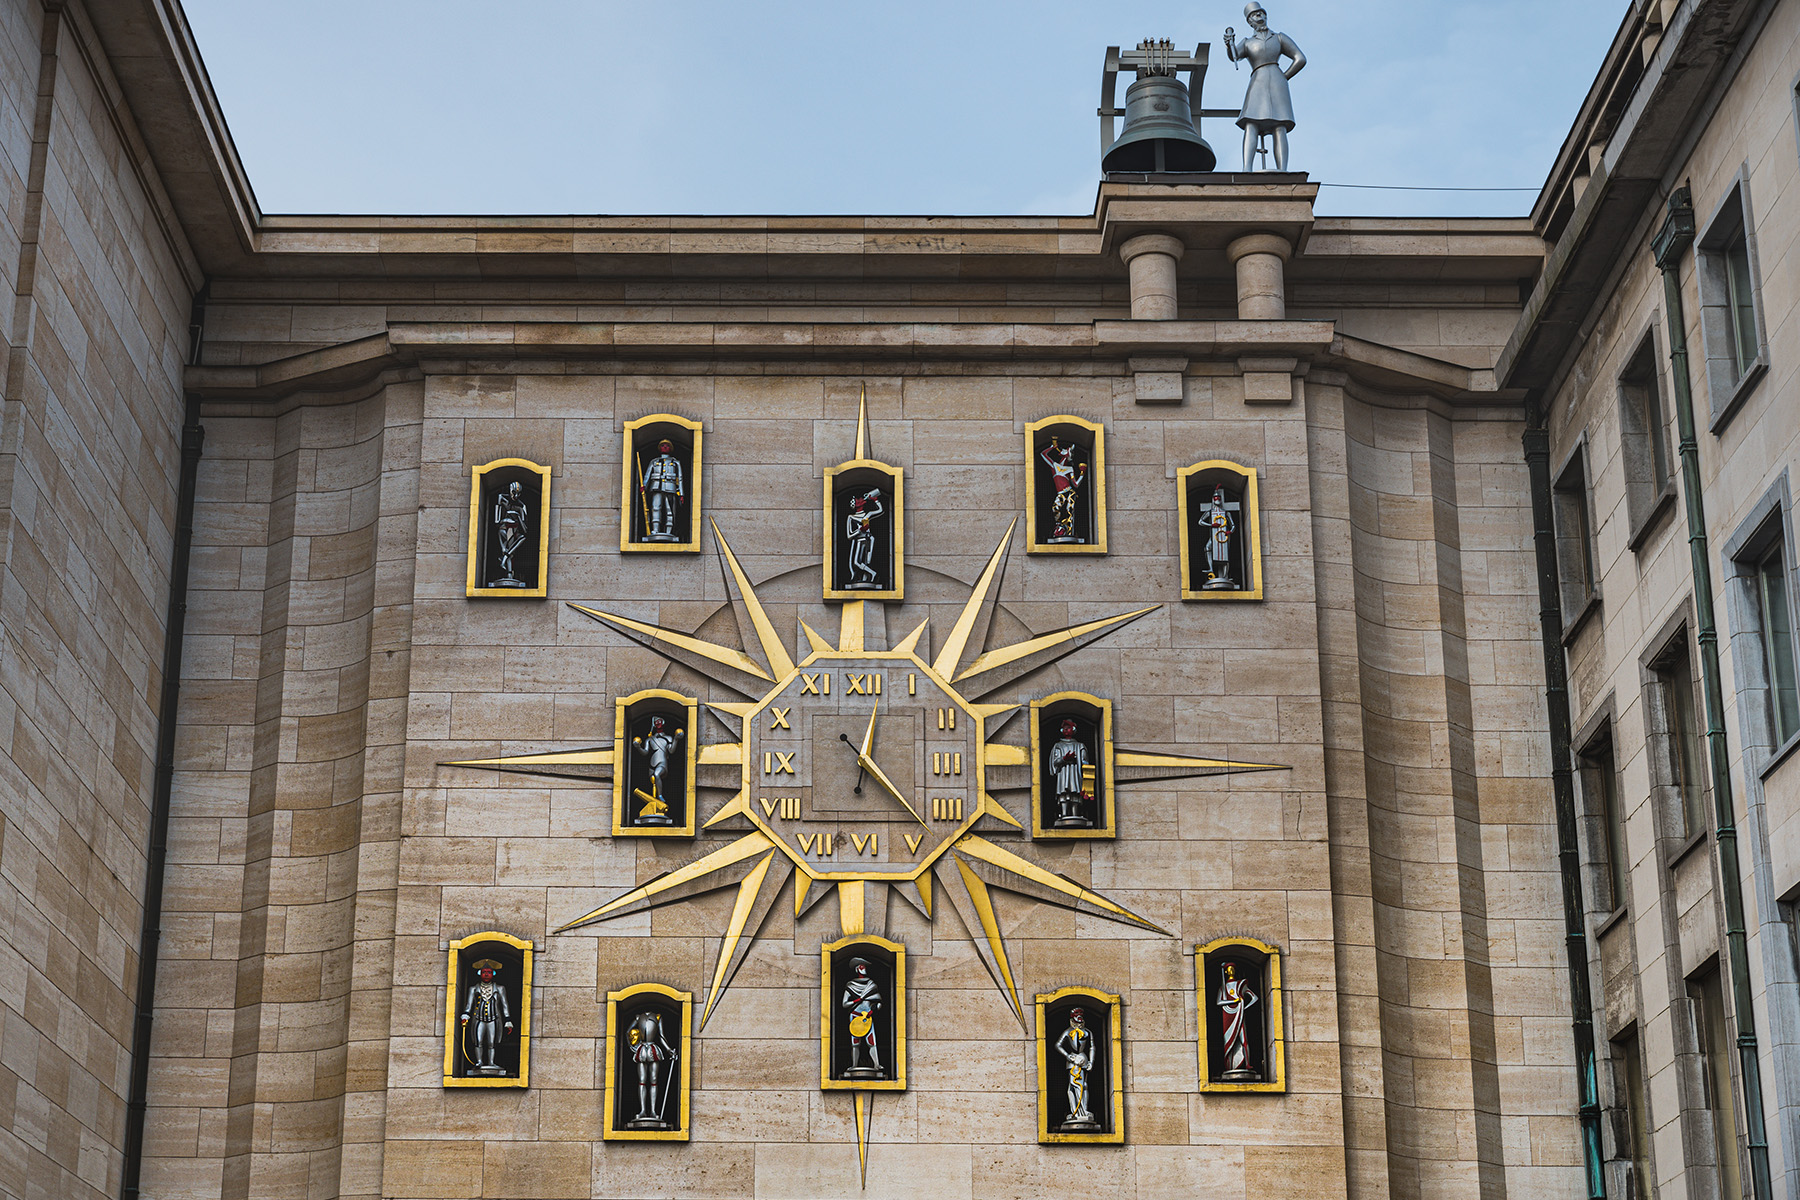 Carillon bells in Brussels